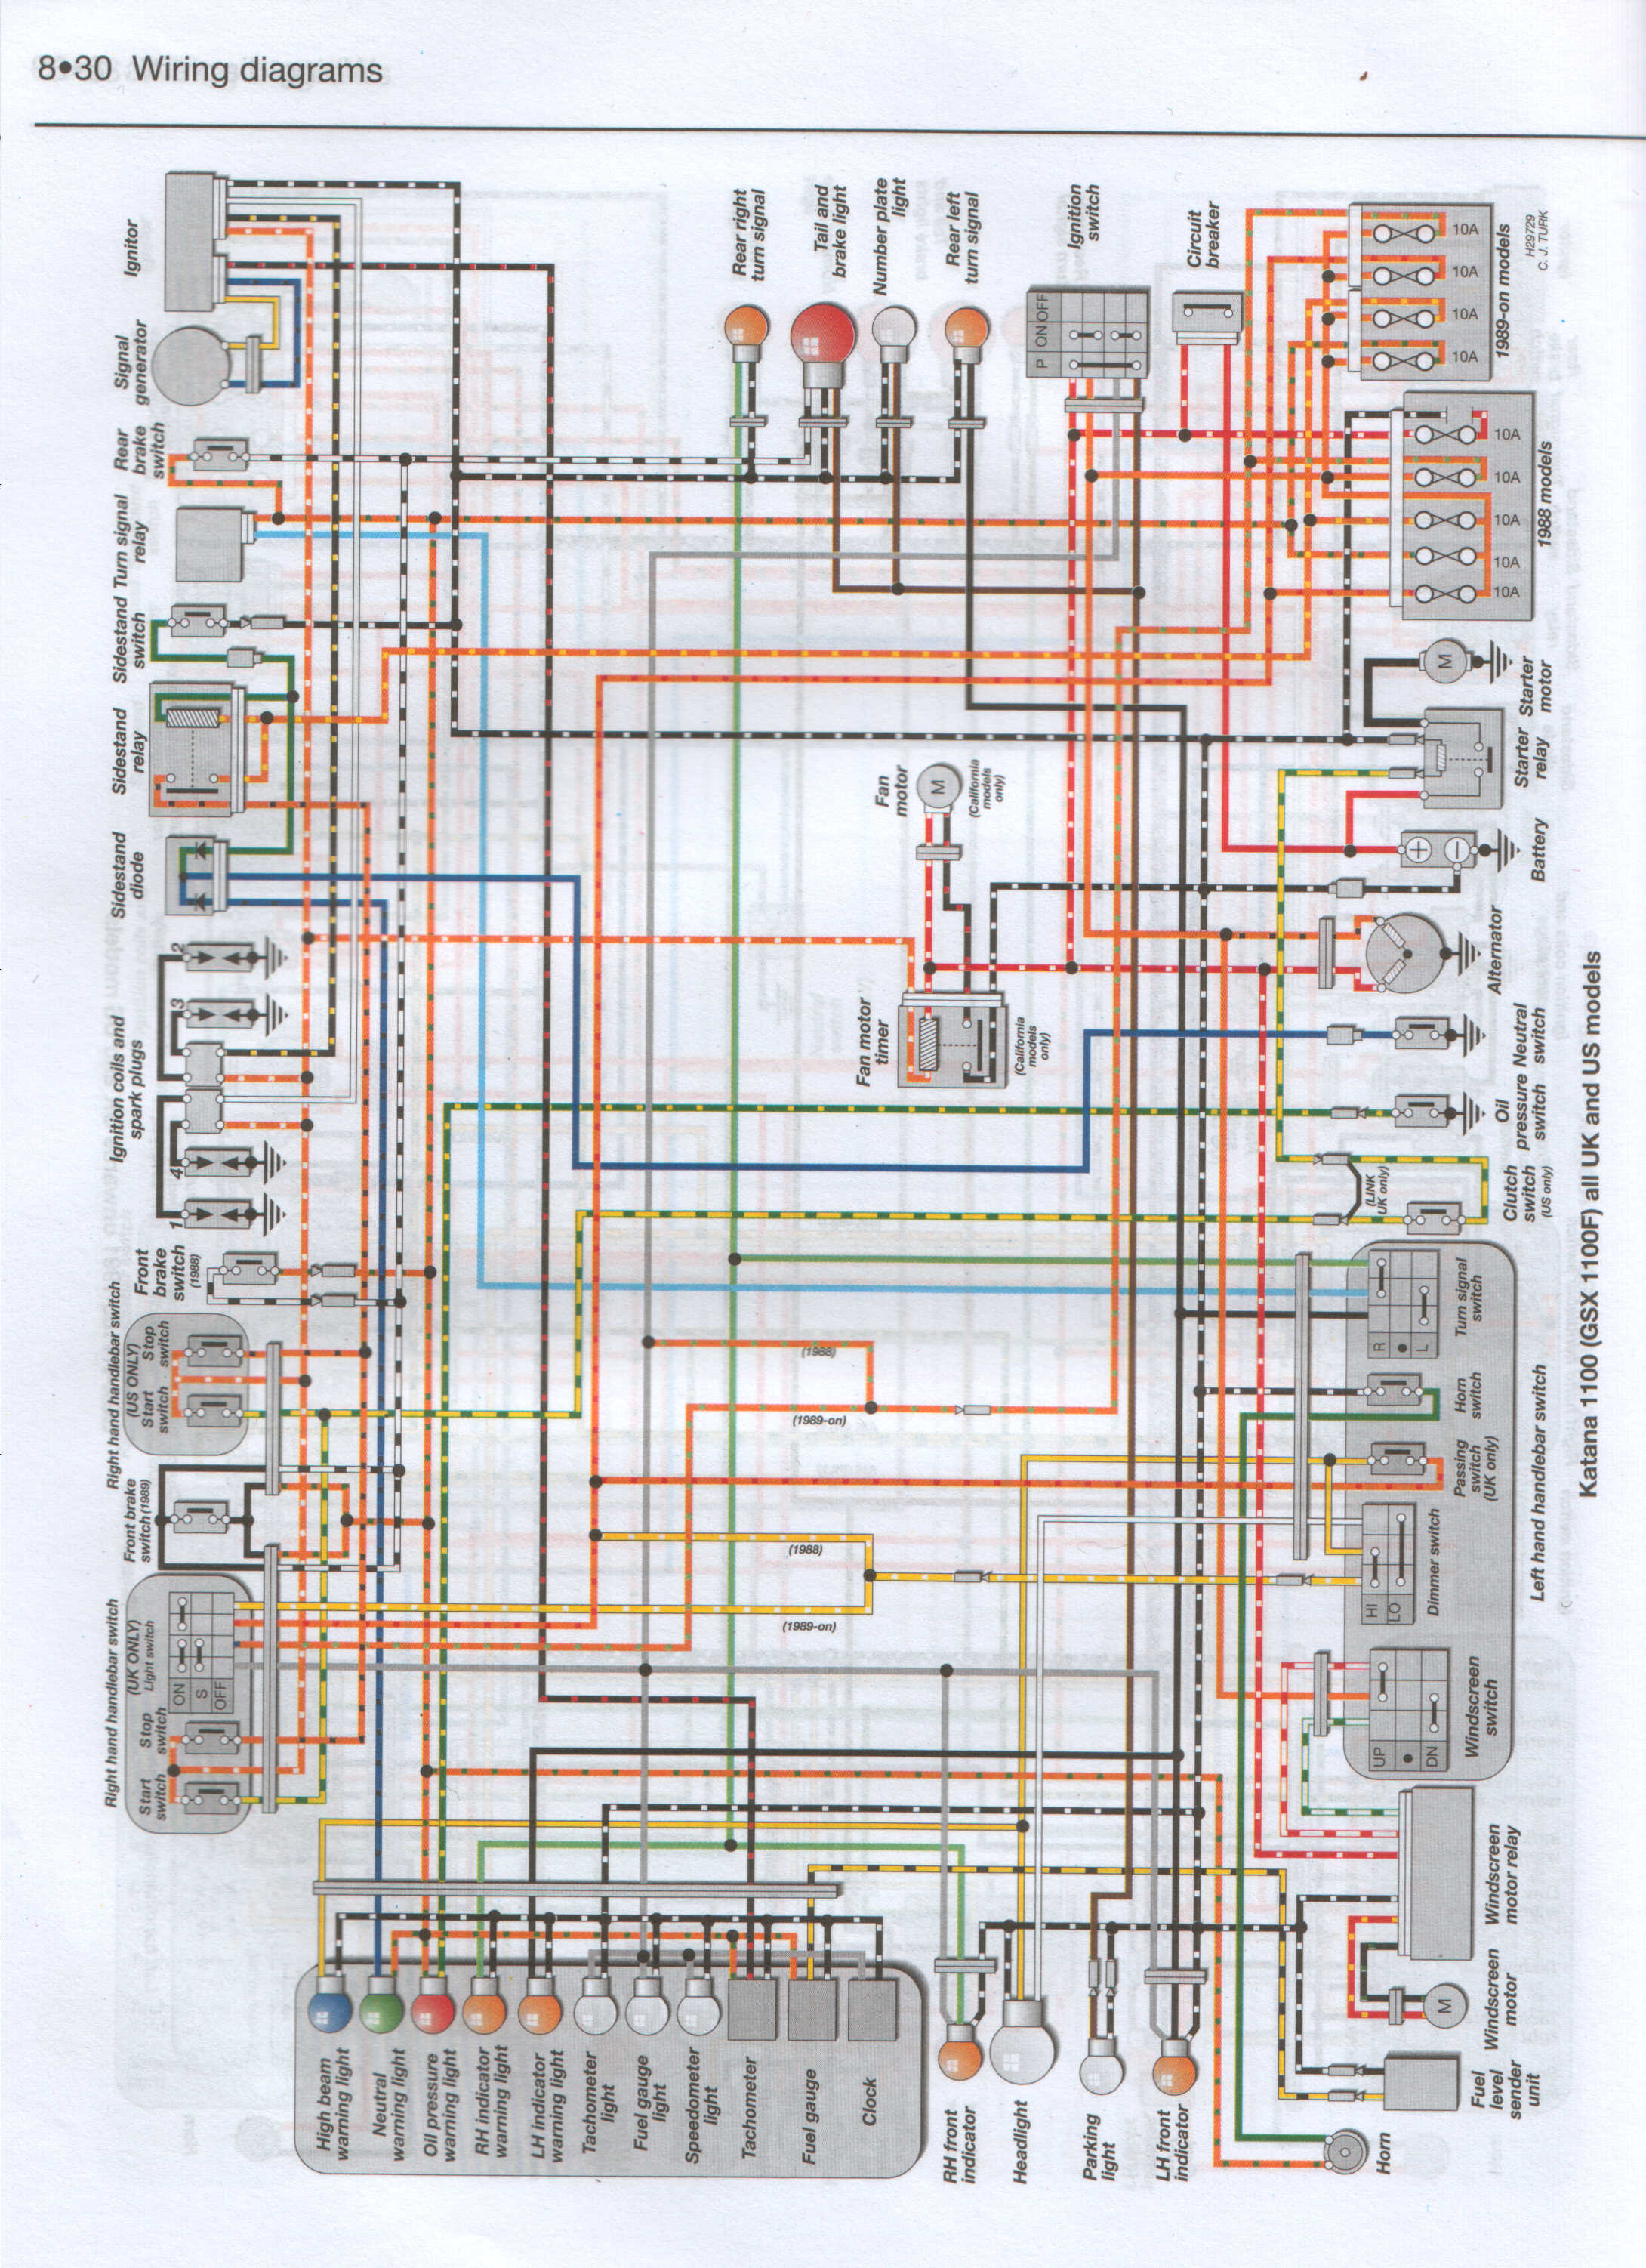 Suzuki_GSX1100F_Wiring_Diagram?resized665%2C916 suzuki dt40 wiring diagram pdf efcaviation com gs550 wiring diagram at fashall.co